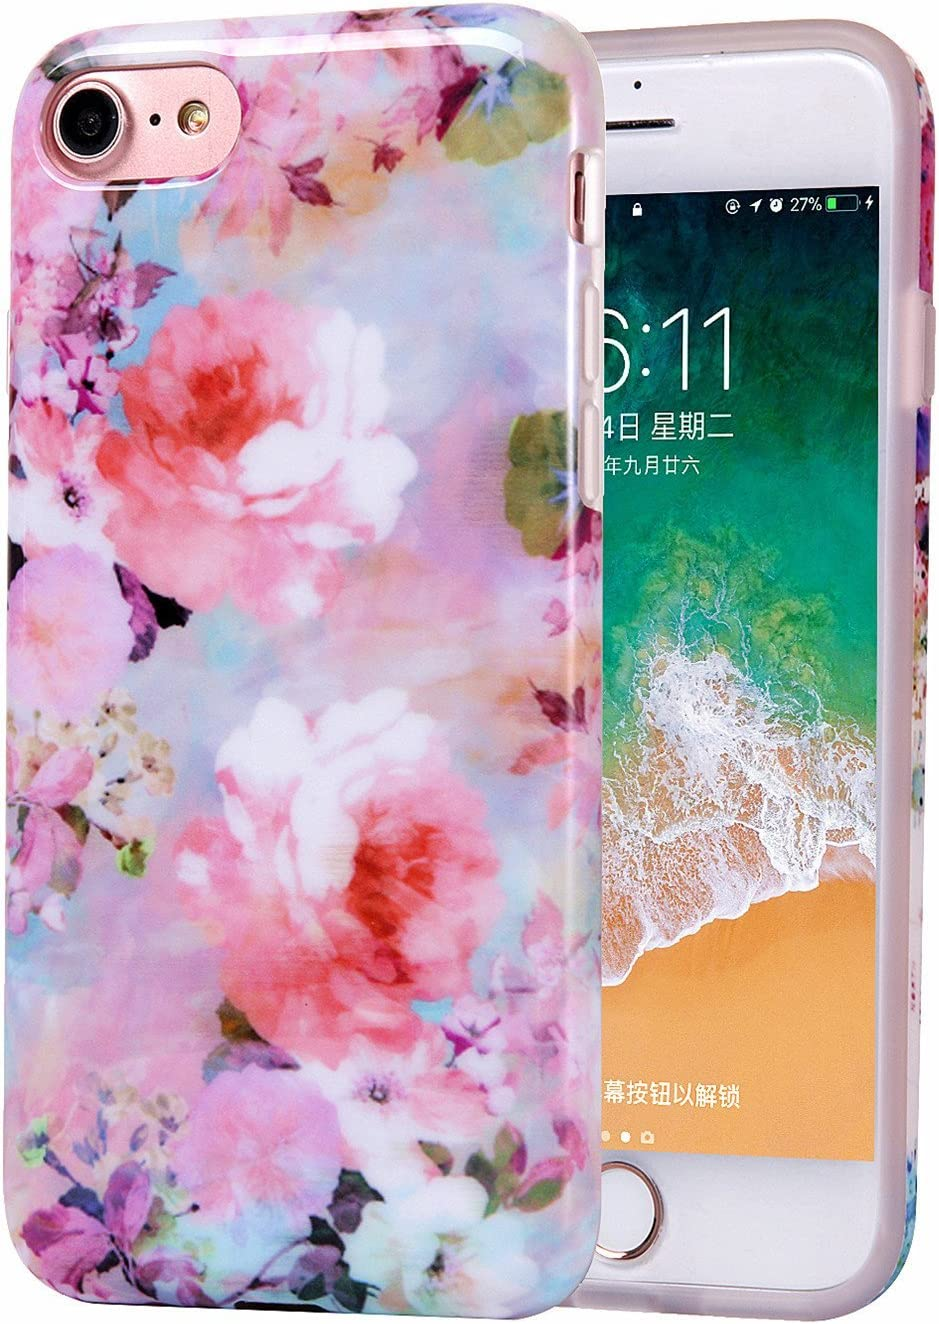 iPhone 6 Case for Girls, iPhone 6s Case, Women Best Protective Cute Slim Pink Glossy Soft Flexible Clear Rubber TPU Silicone Cover Phone Case for iPhone 6 / 6s (Bloom Flower)